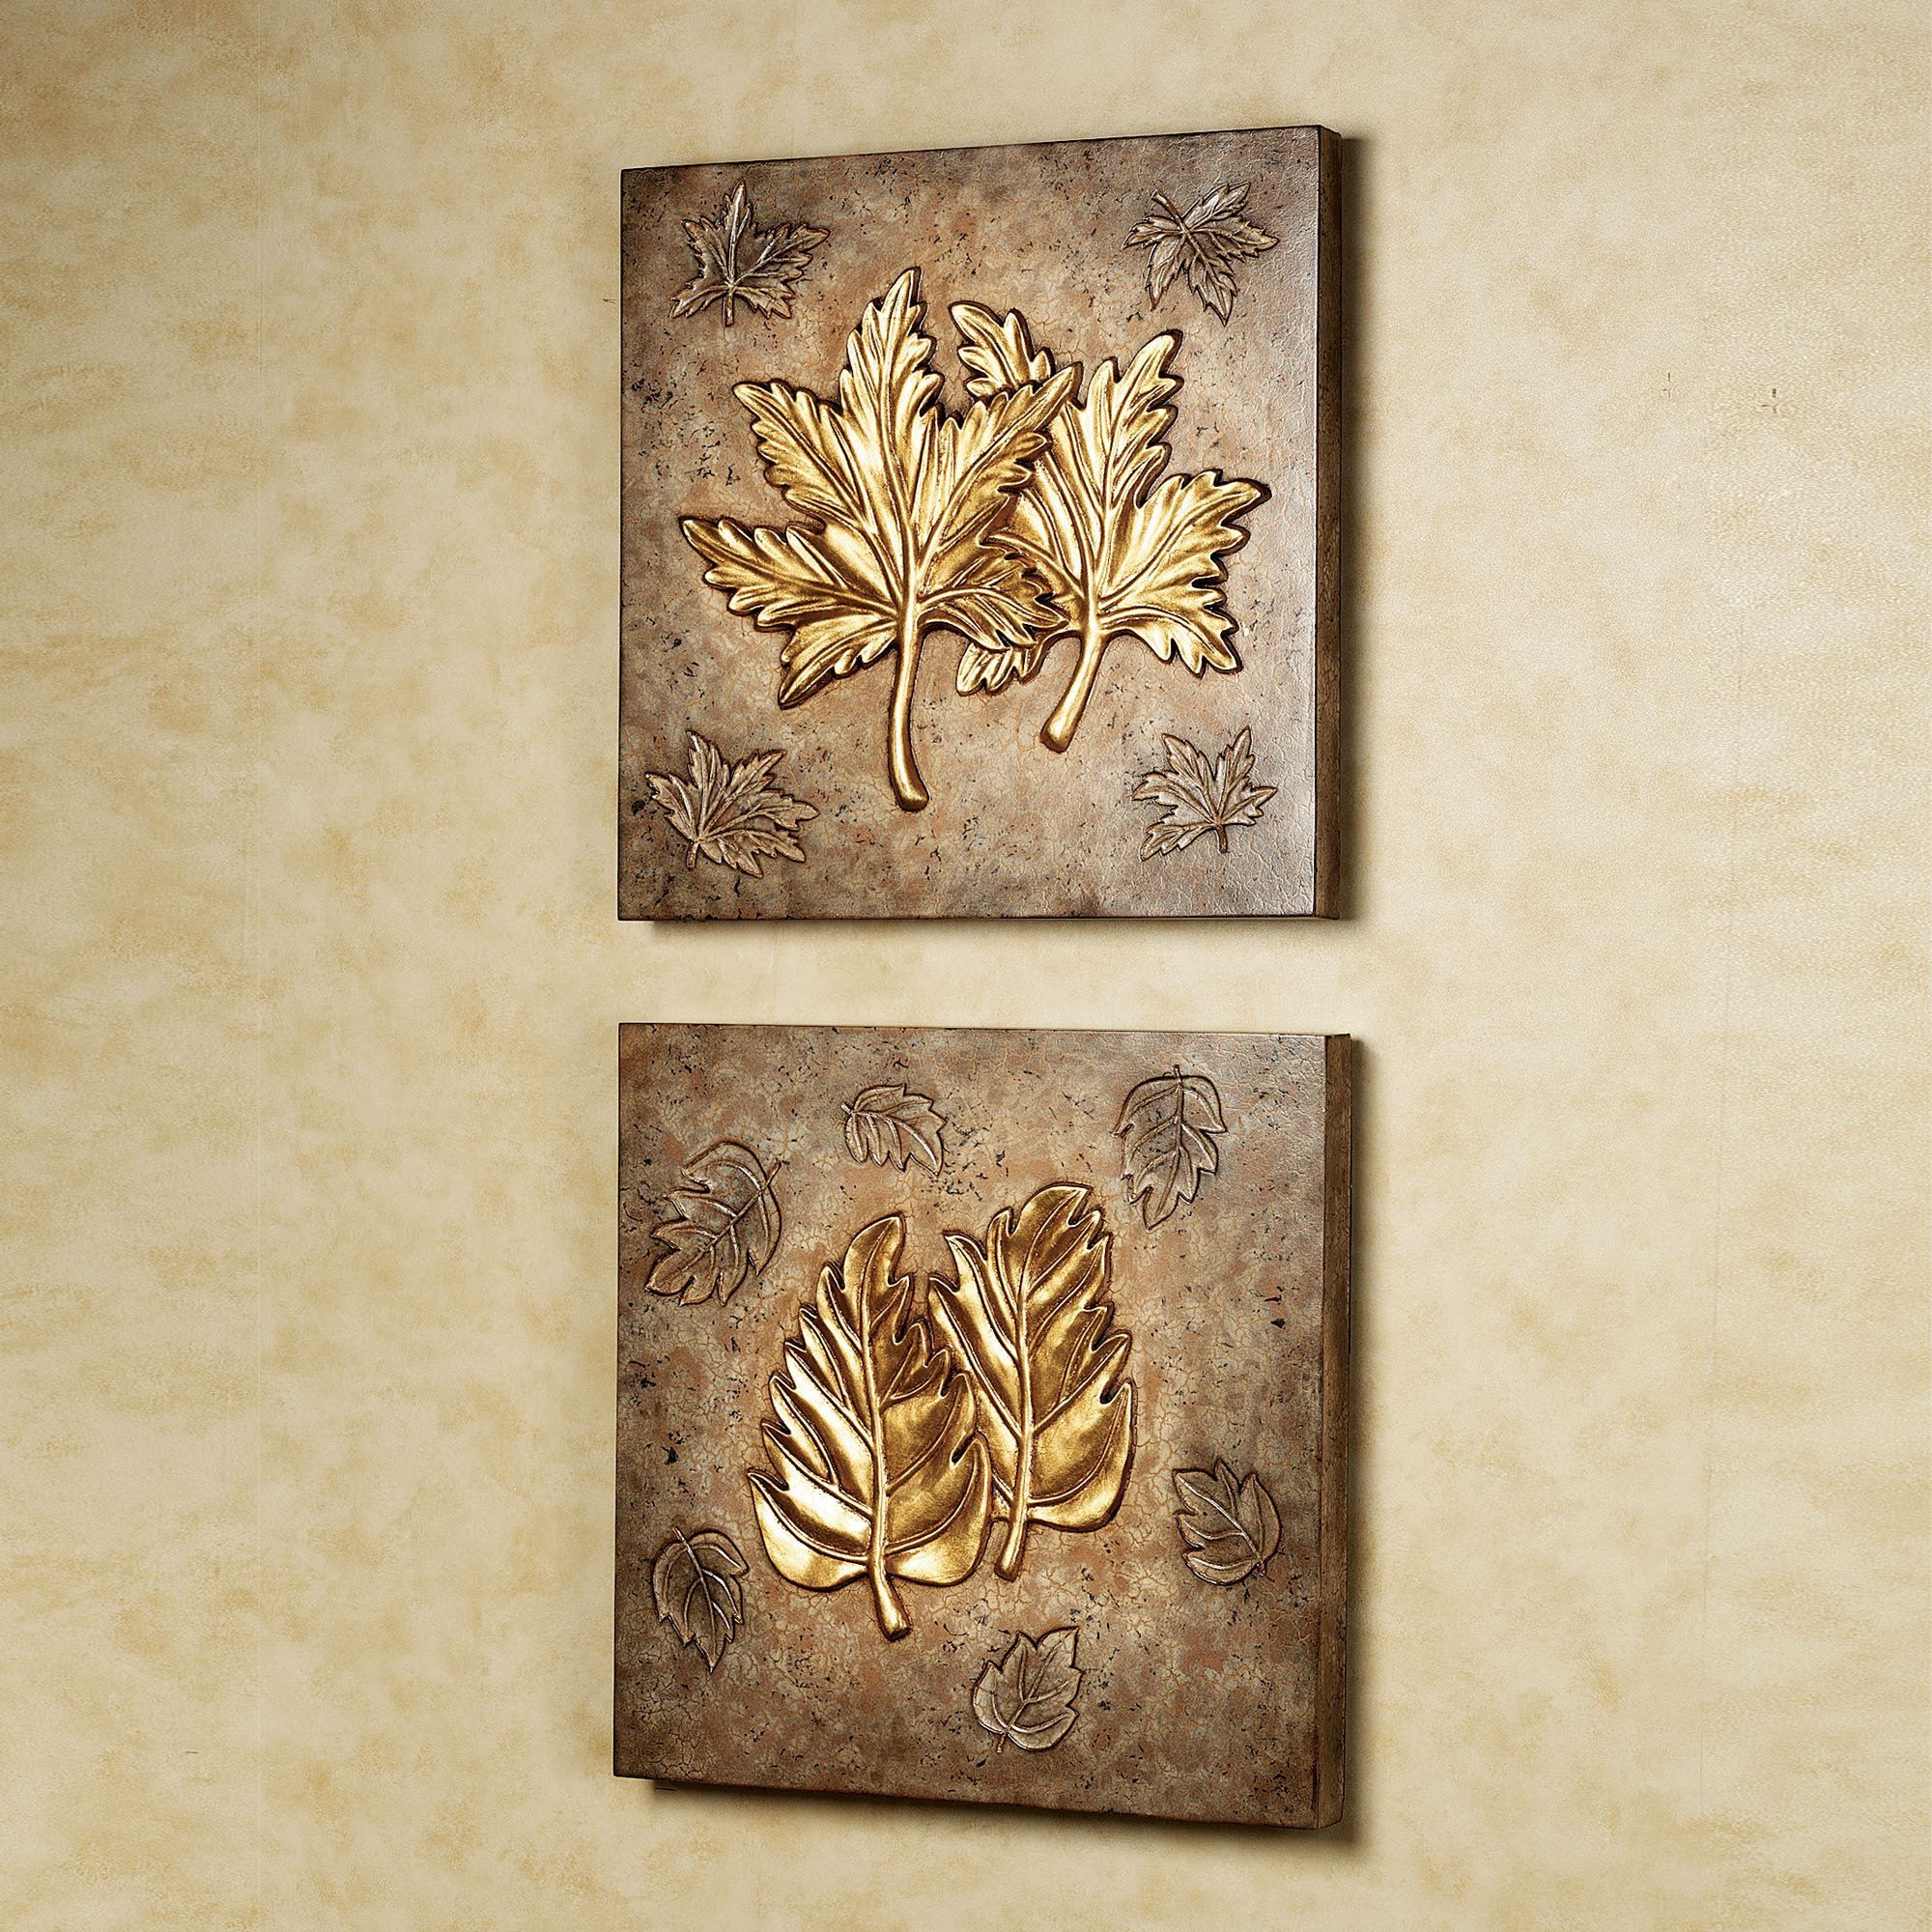 Pindolly Walker On Gold Leaf | Wall Art Sets, Wall Intended For Leaves Metal Sculpture Wall Decor By Winston Porter (View 15 of 30)